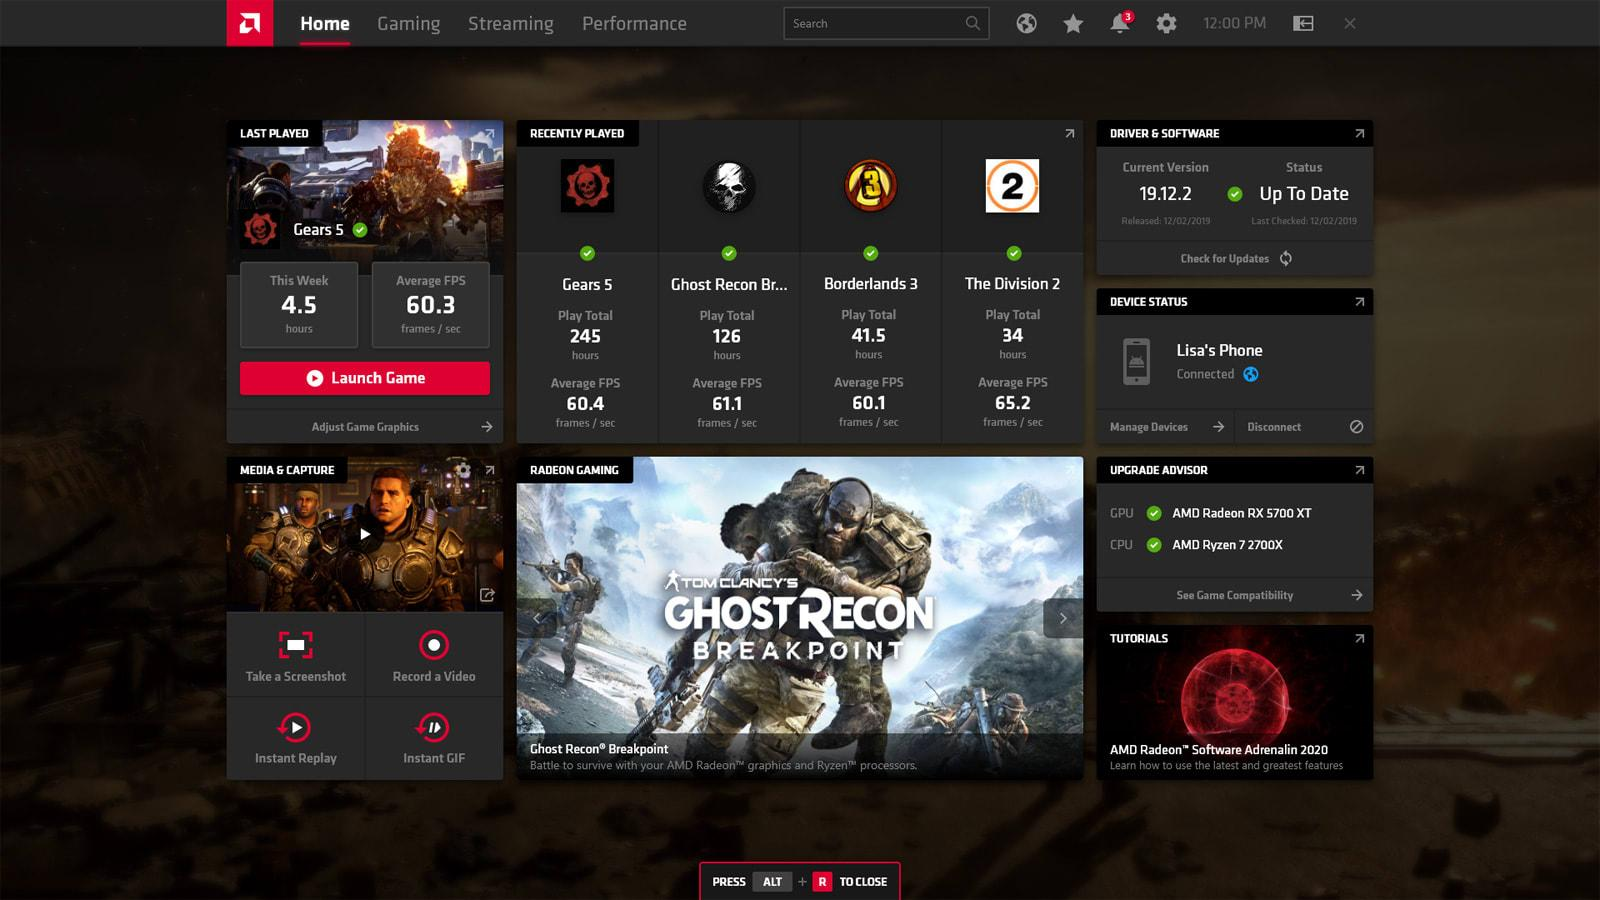 AMD's new Radeon software offers game streaming away from home